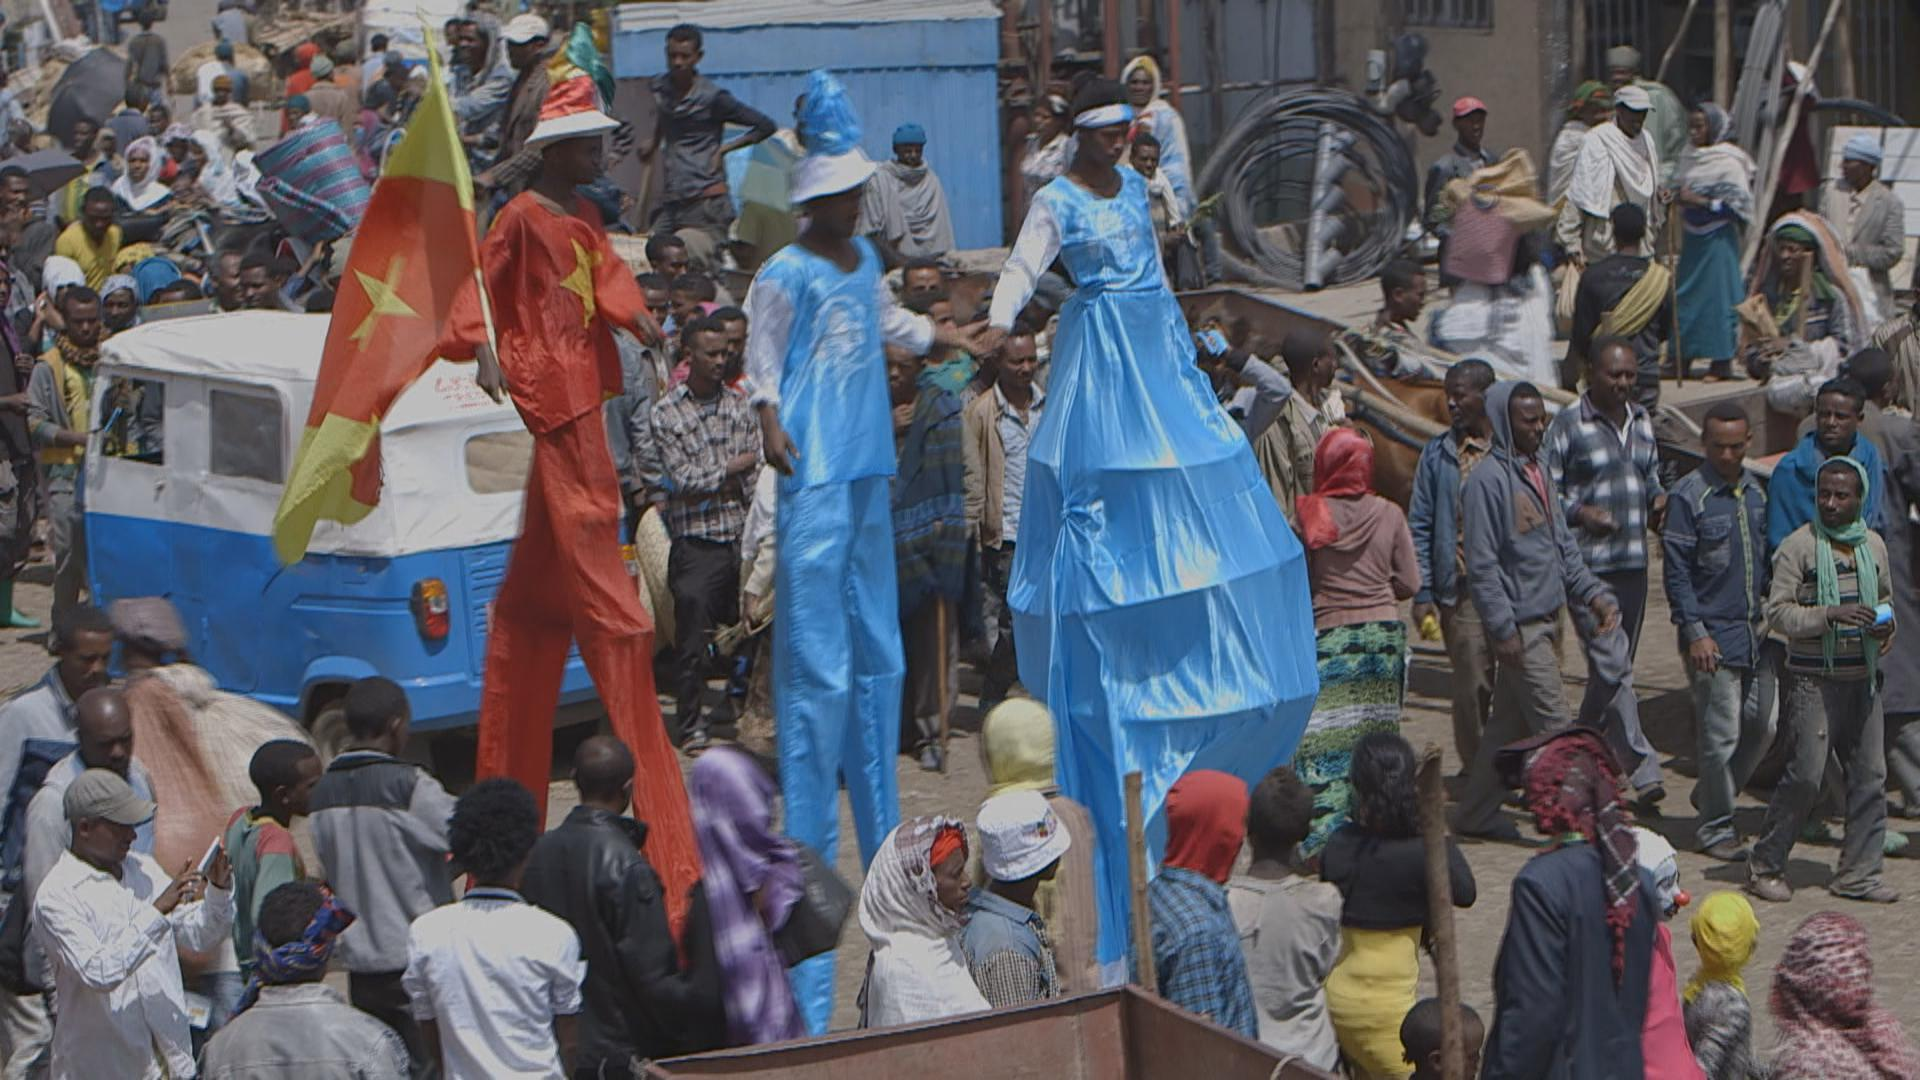 The performers of the Circus engaging in a social event where they promoted the work of a local organization, Marie Stopes